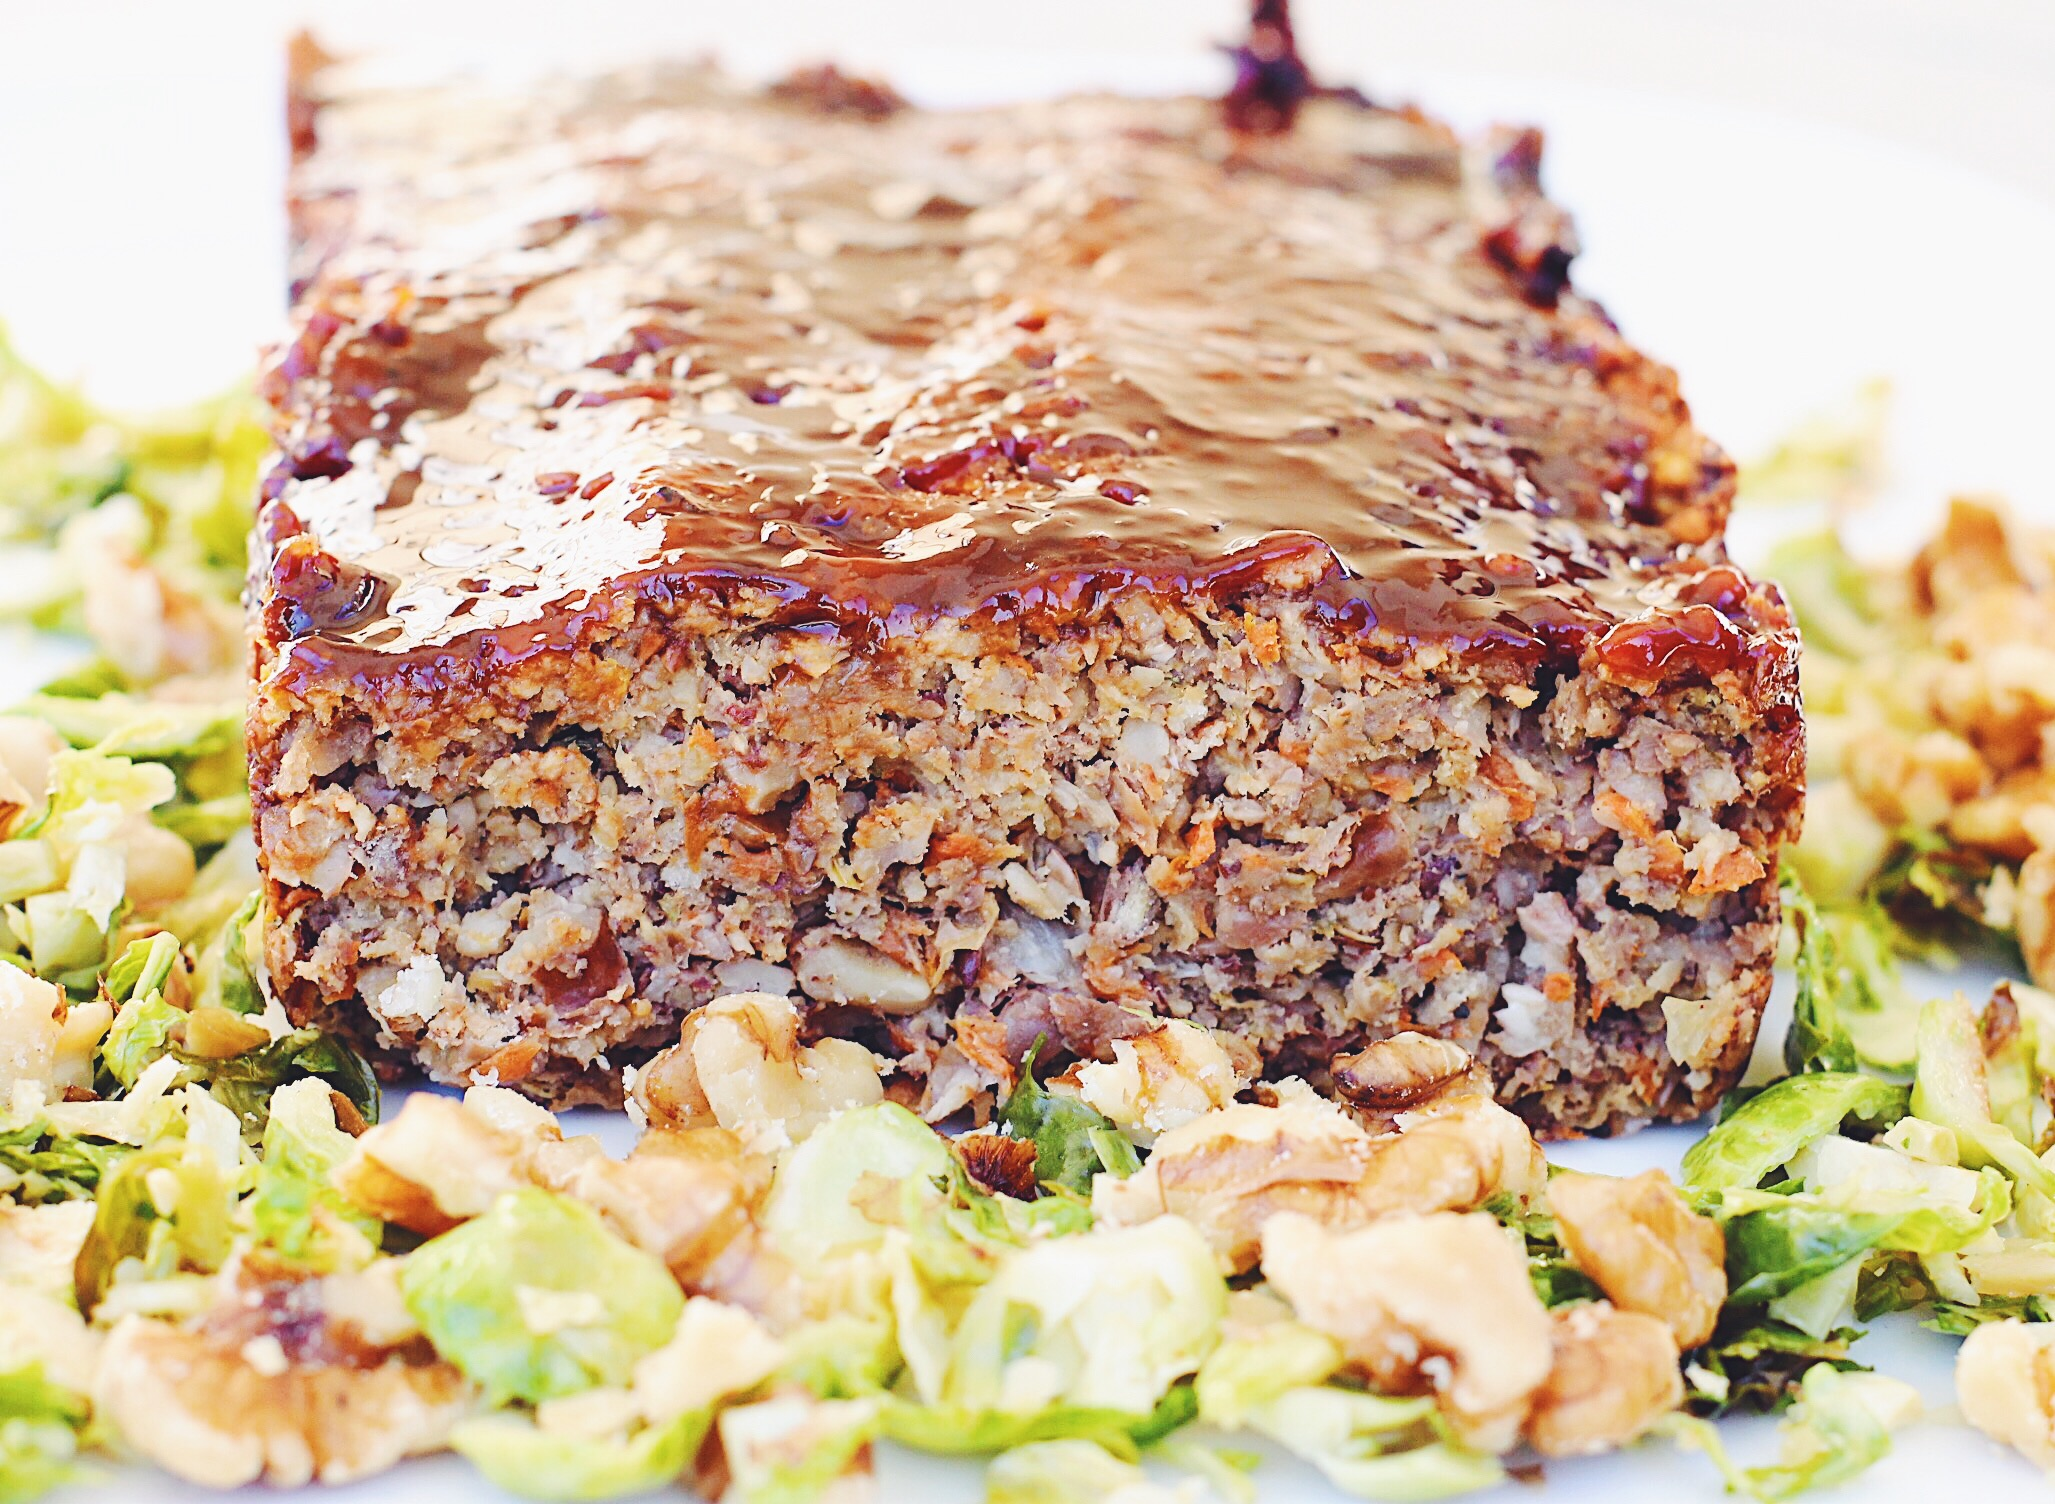 Lentil Walnut Loaf with BBQ Balsamic Glaze and Maple Dijon Brussels Sprouts